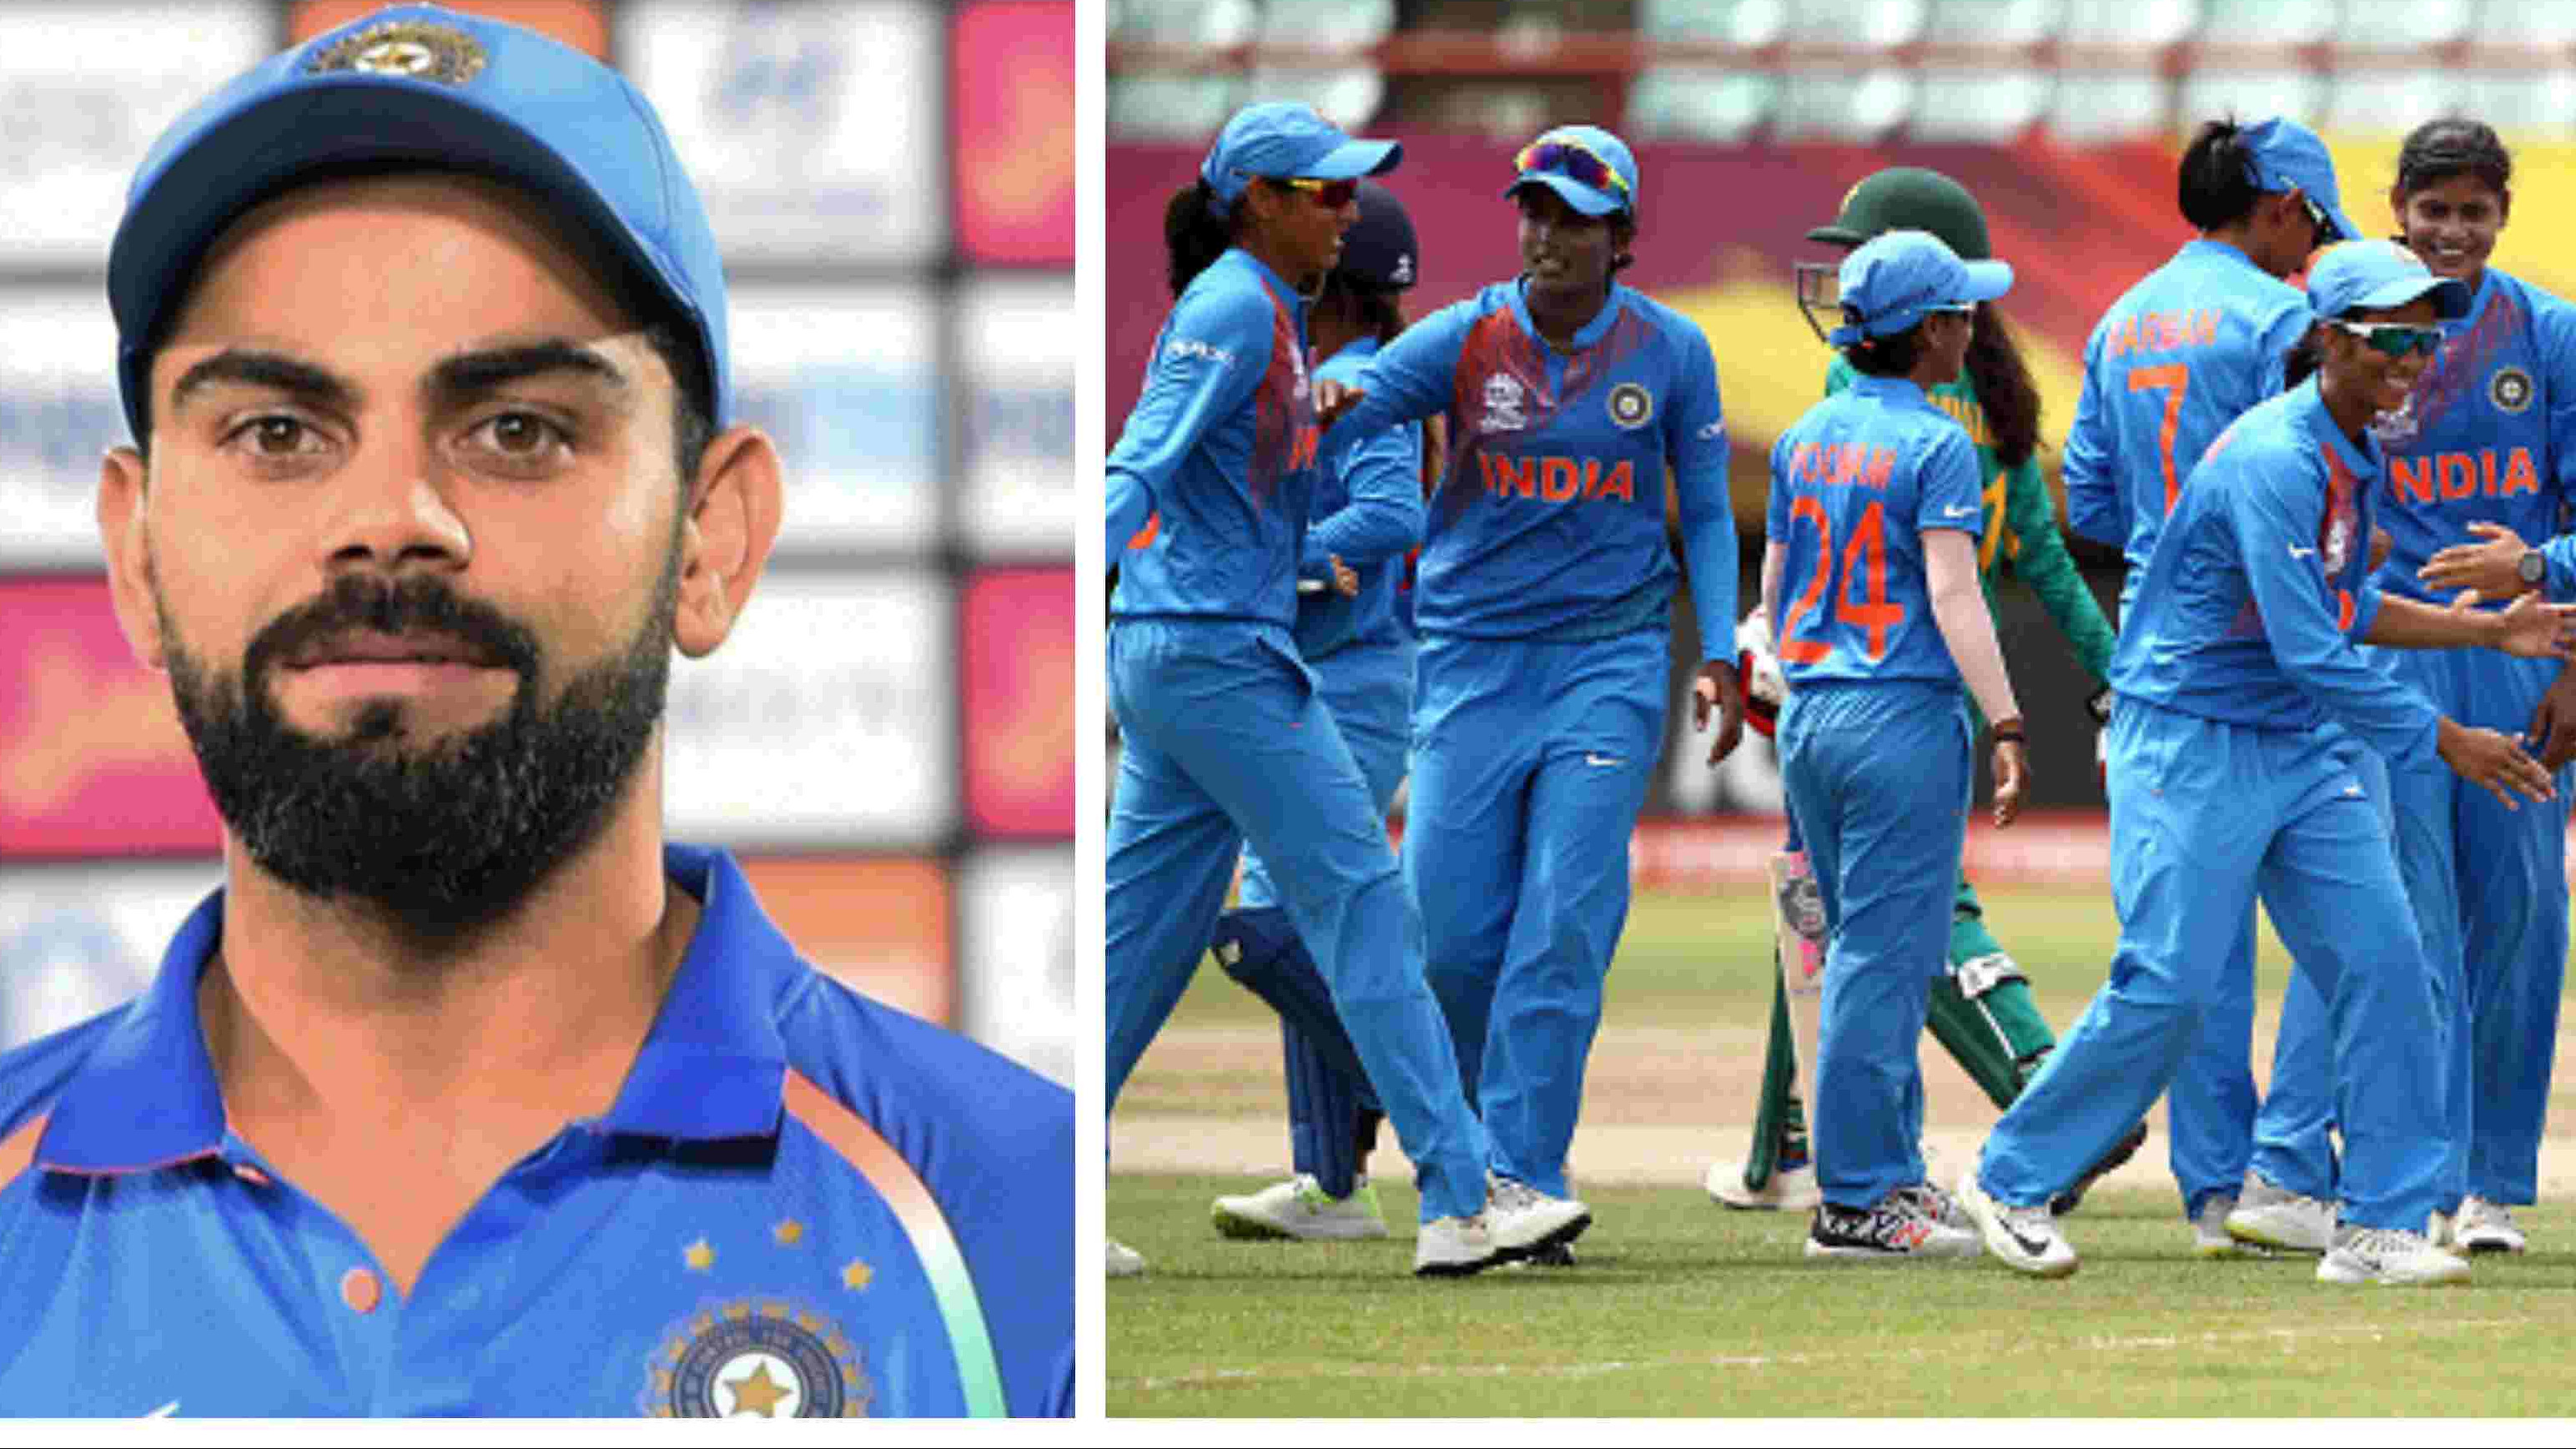 ICC Women's World T20: Virat Kohli sends positive vibes for Team India ahead of Ireland tie